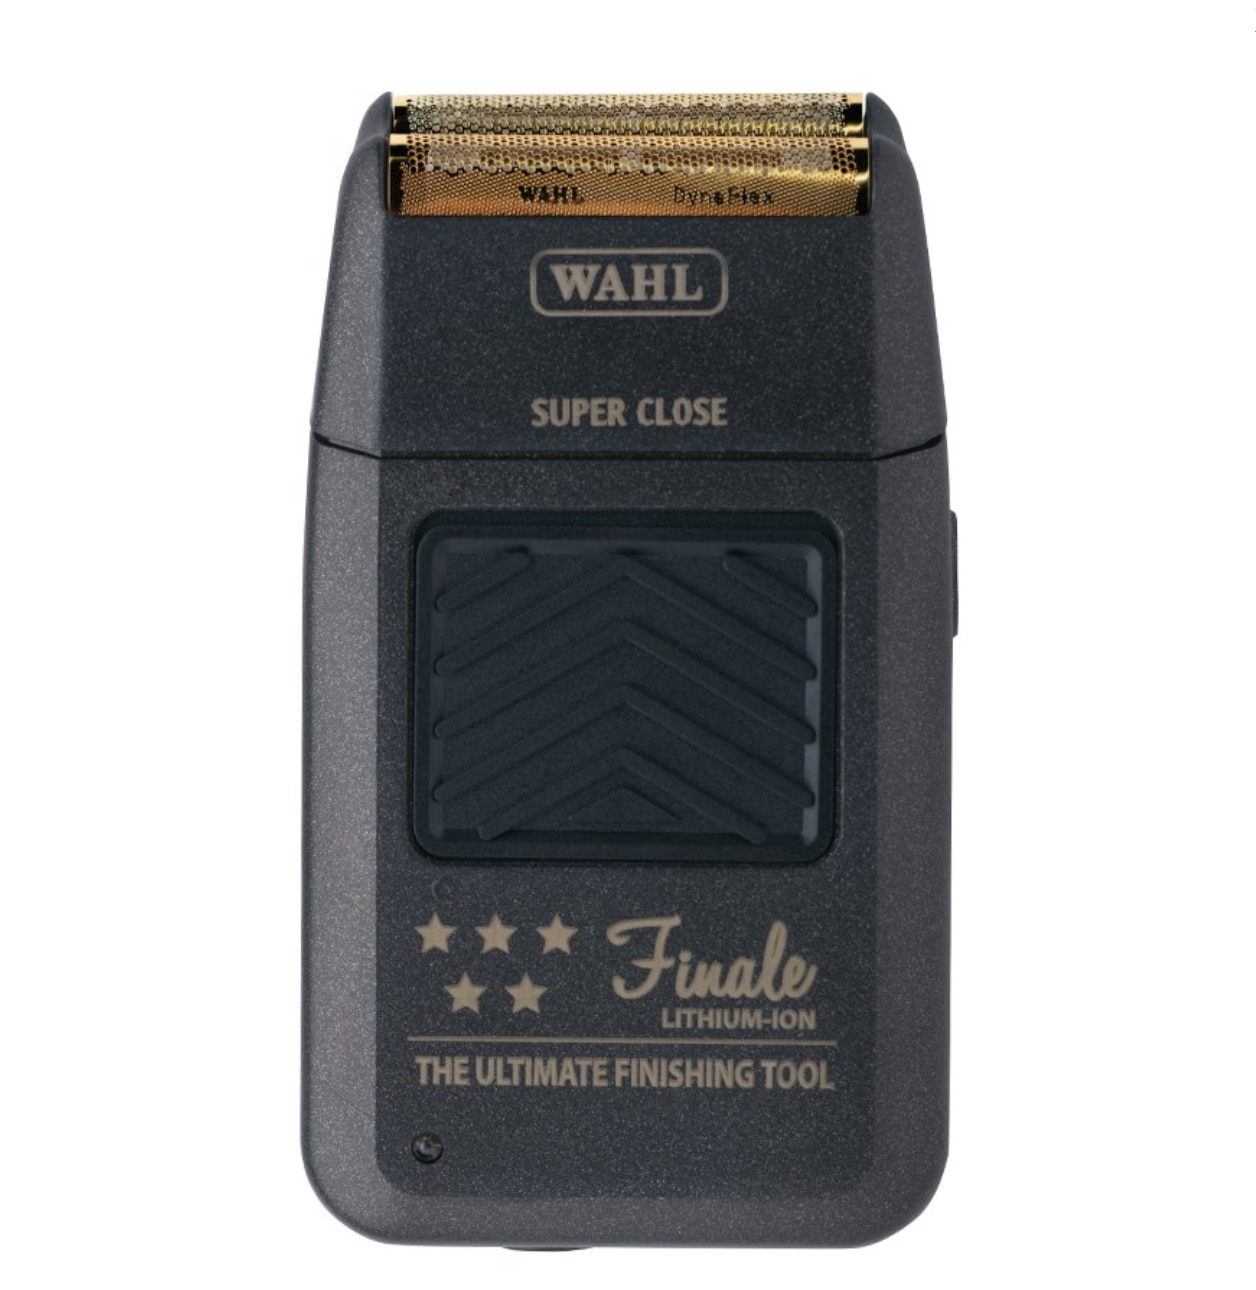 Wahl 8164 Finale Professional 5 Star Series Ultimate Cord/Cordless Finishing Tool, Ultra Smooth Finish, Skin Close Hair Cut Fade enlarge